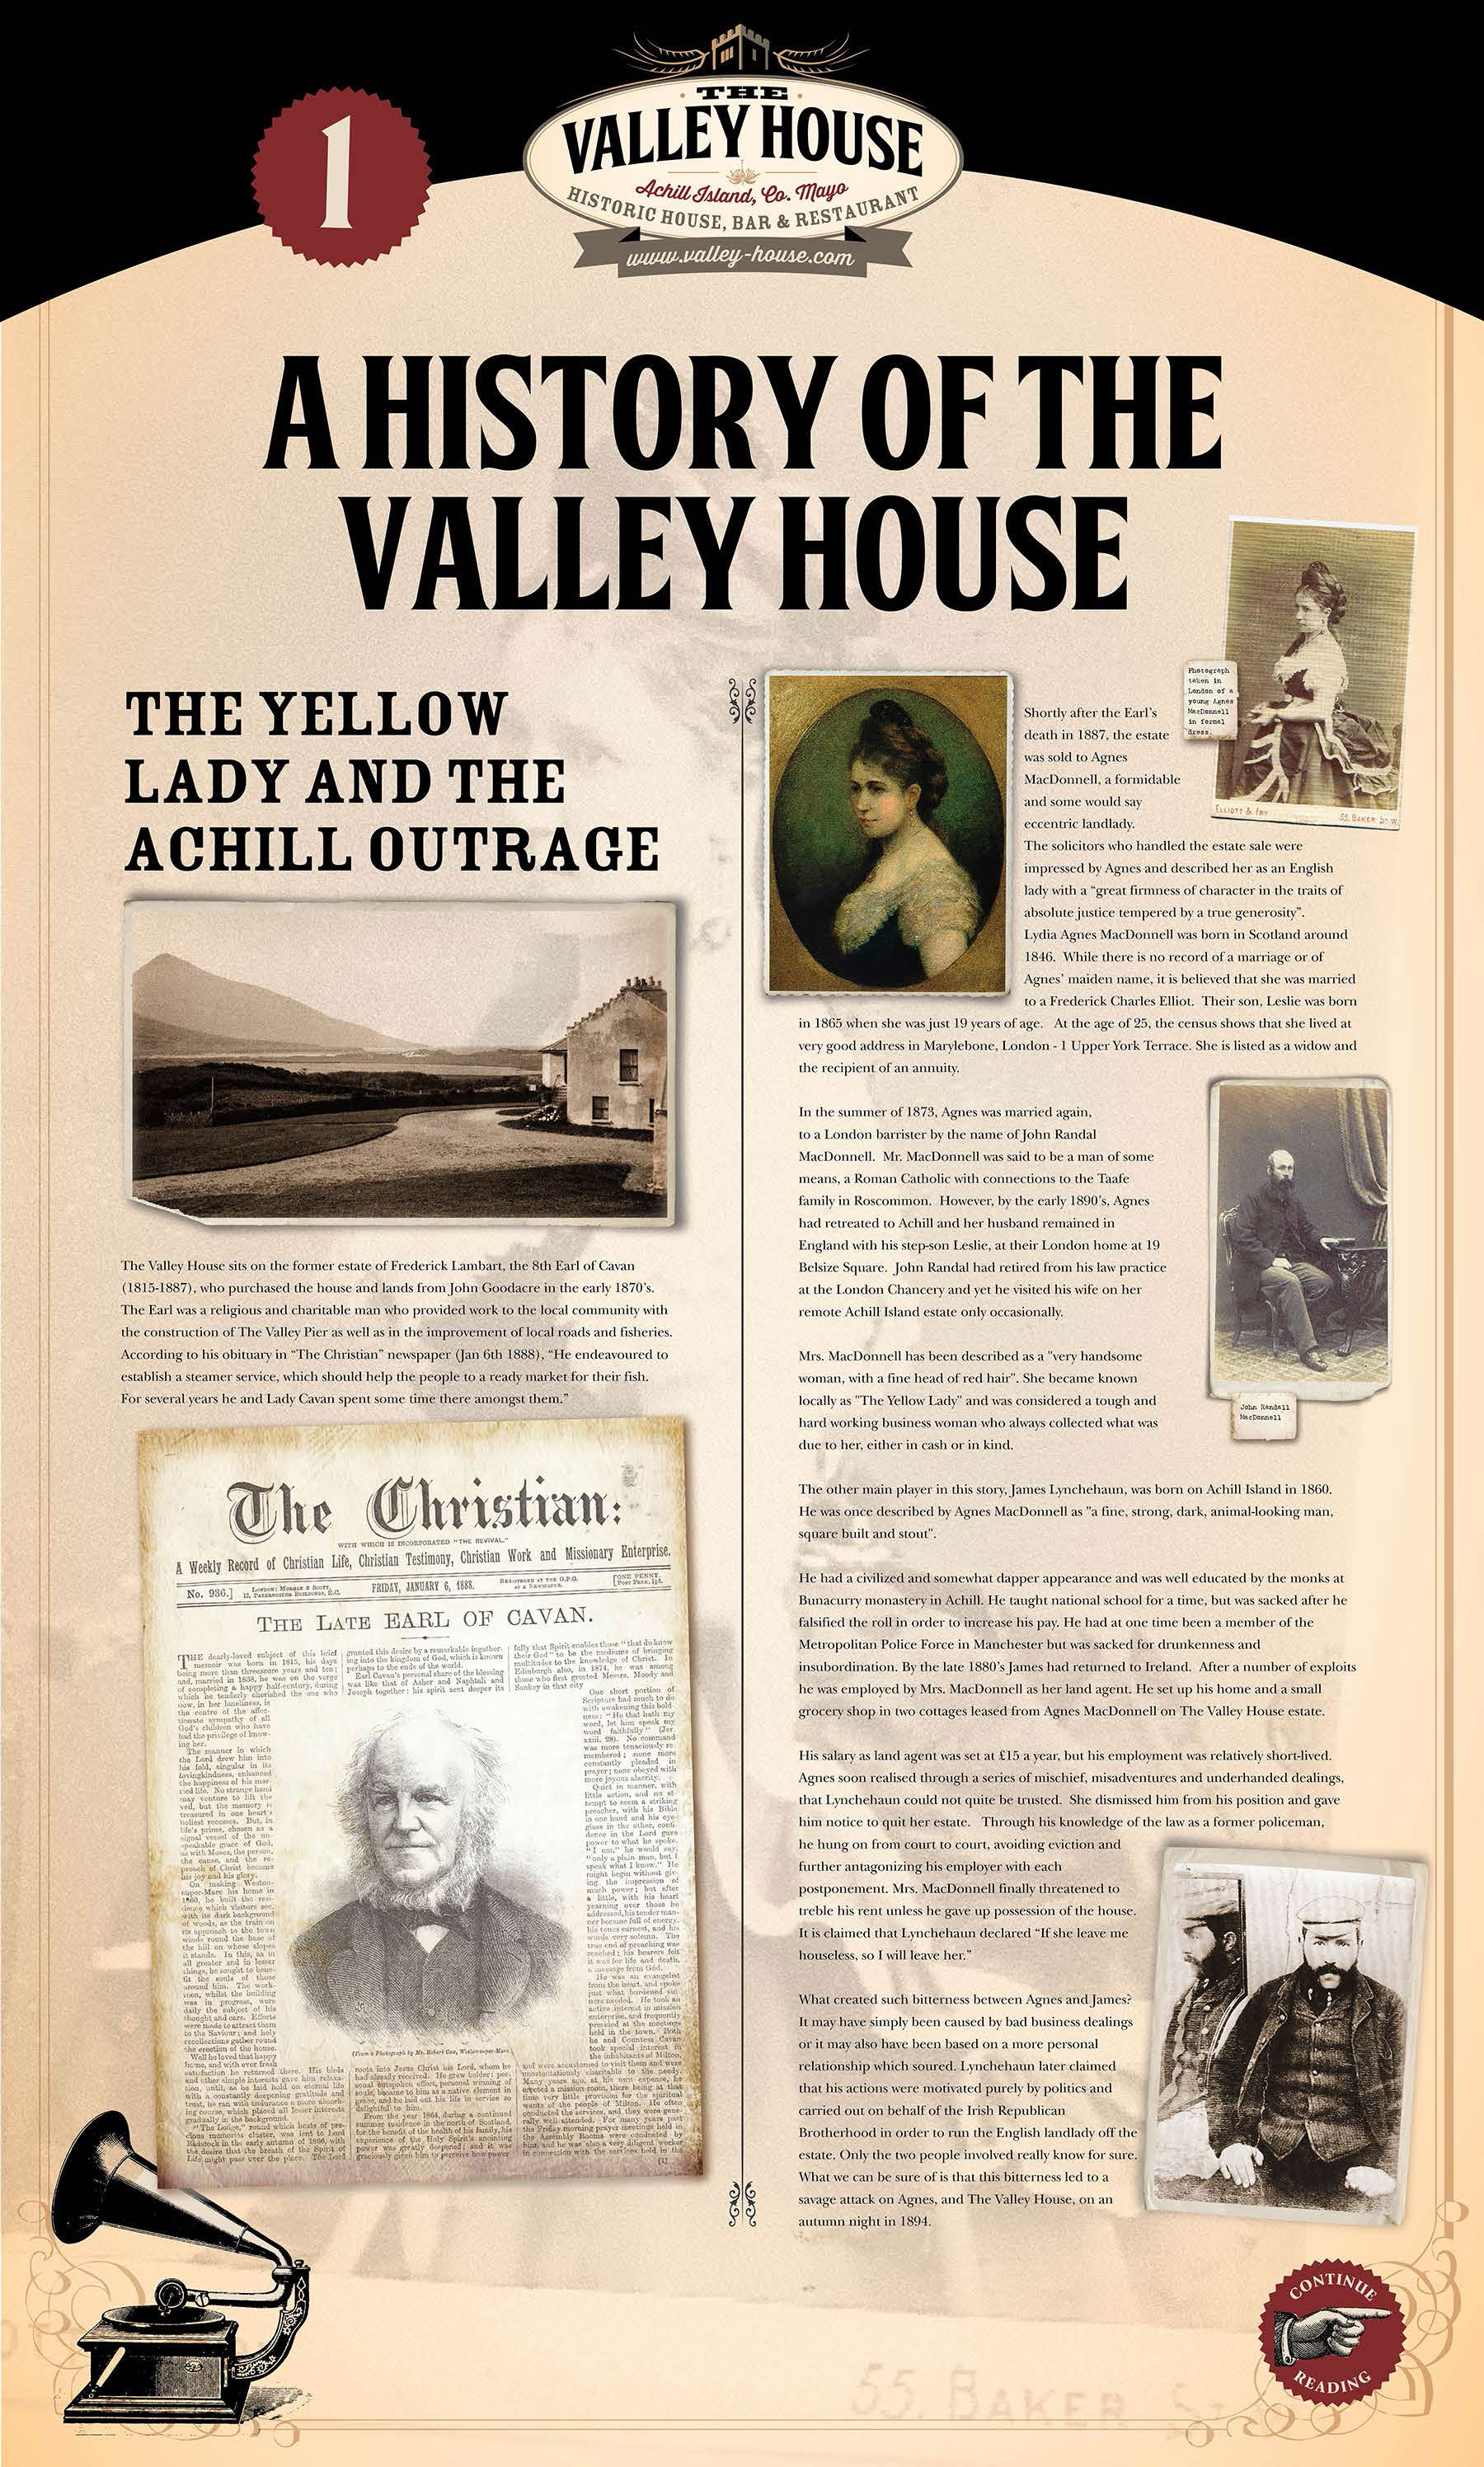 Valley House History